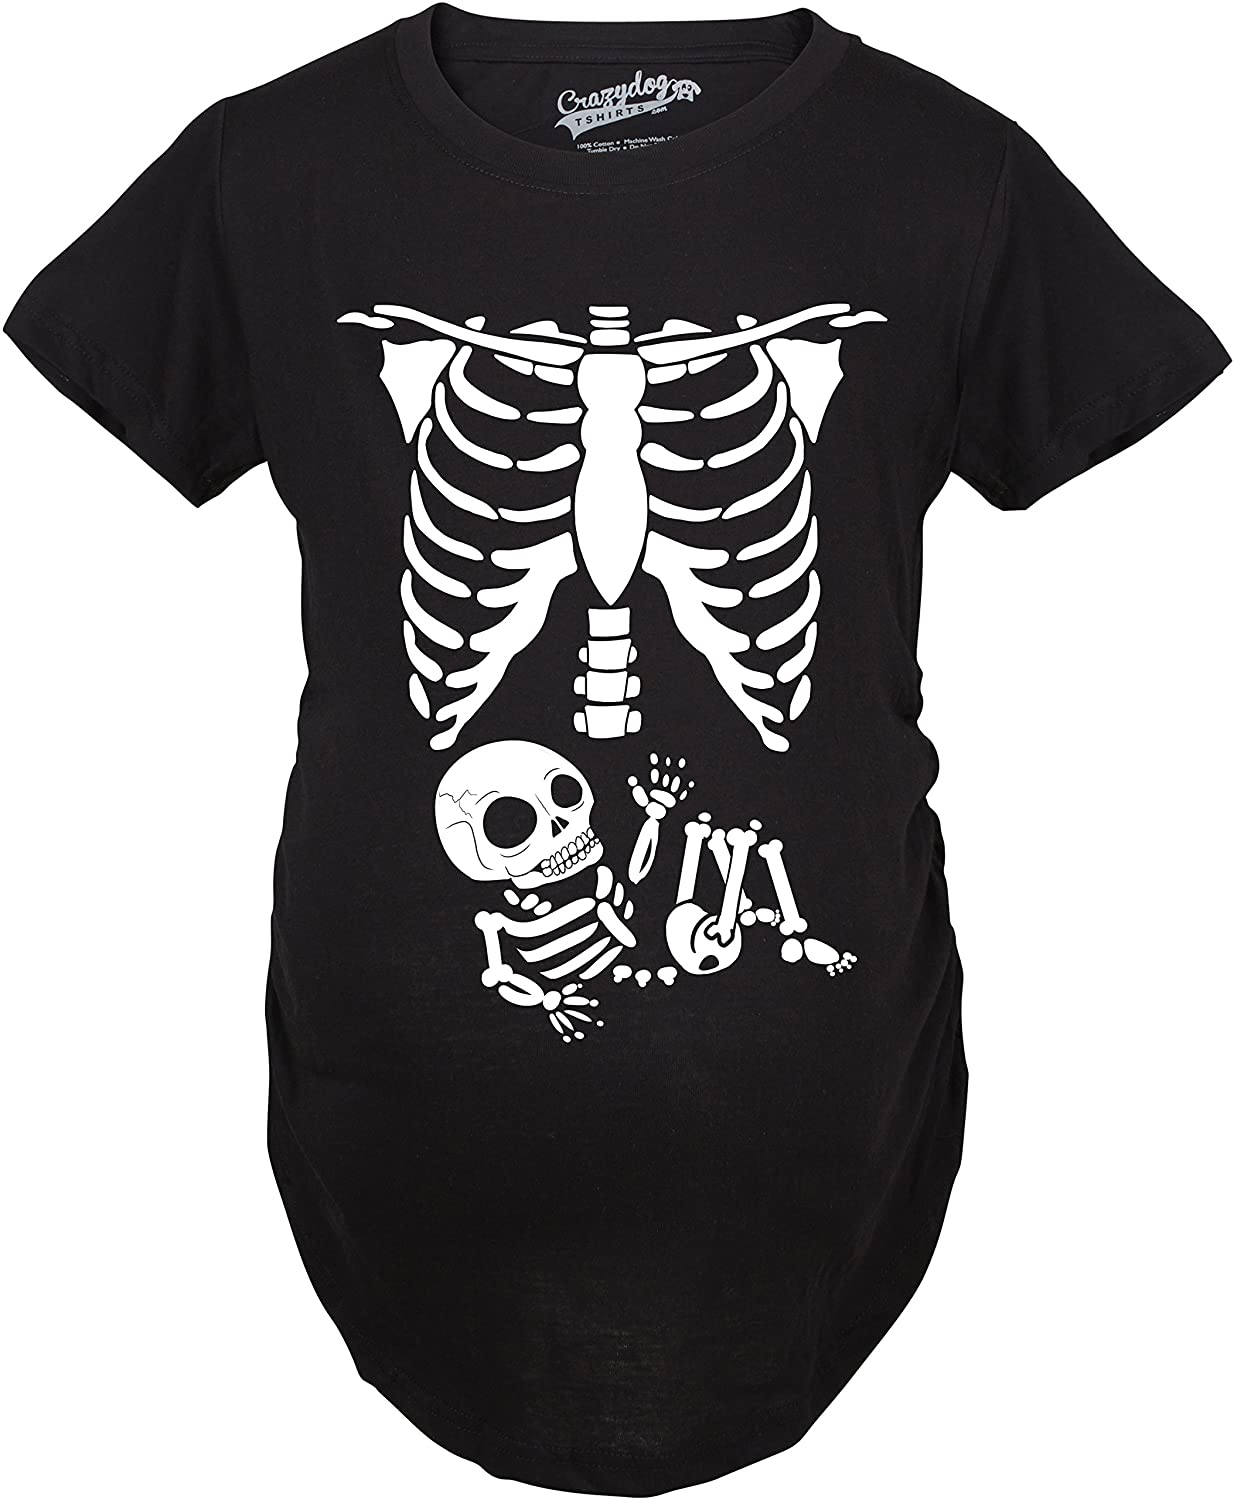 Maternity Skeleton Baby T Shirt Halloween Costume Funny Pregnancy Tee For Mother